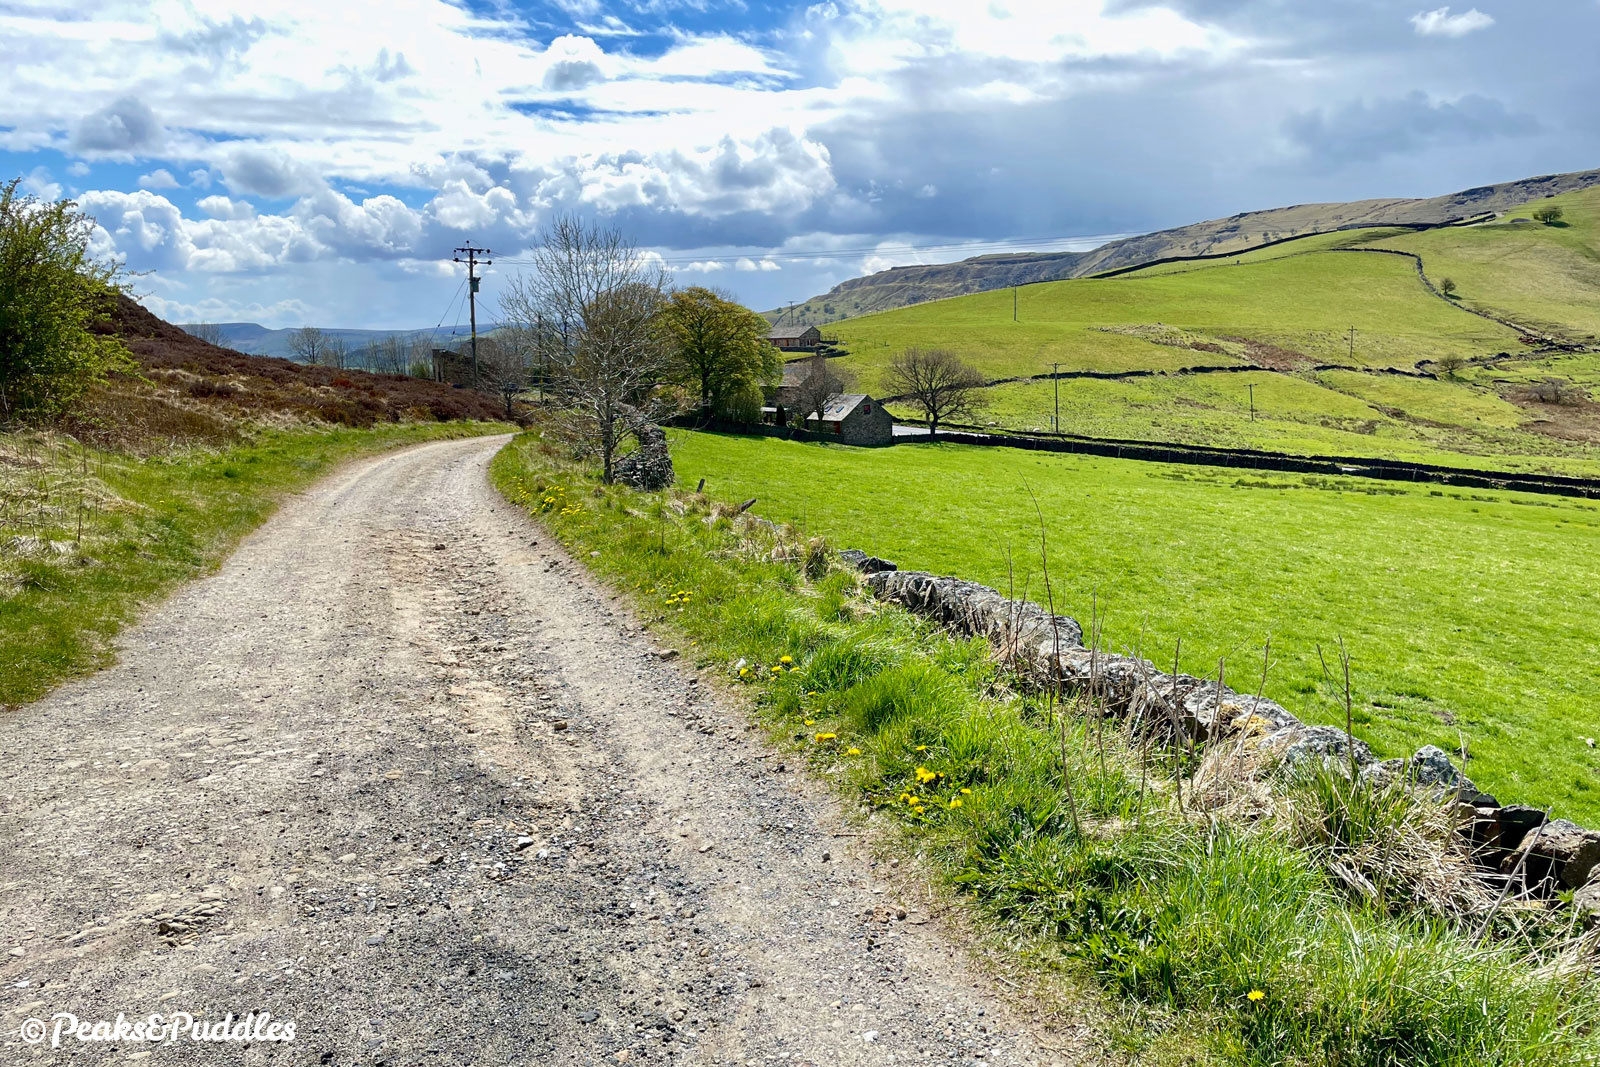 (Bridleway option) The smoother finale of the bridleway from the foot of Mount Pleasant over towards Chinley Churn, escaping the A624 below.